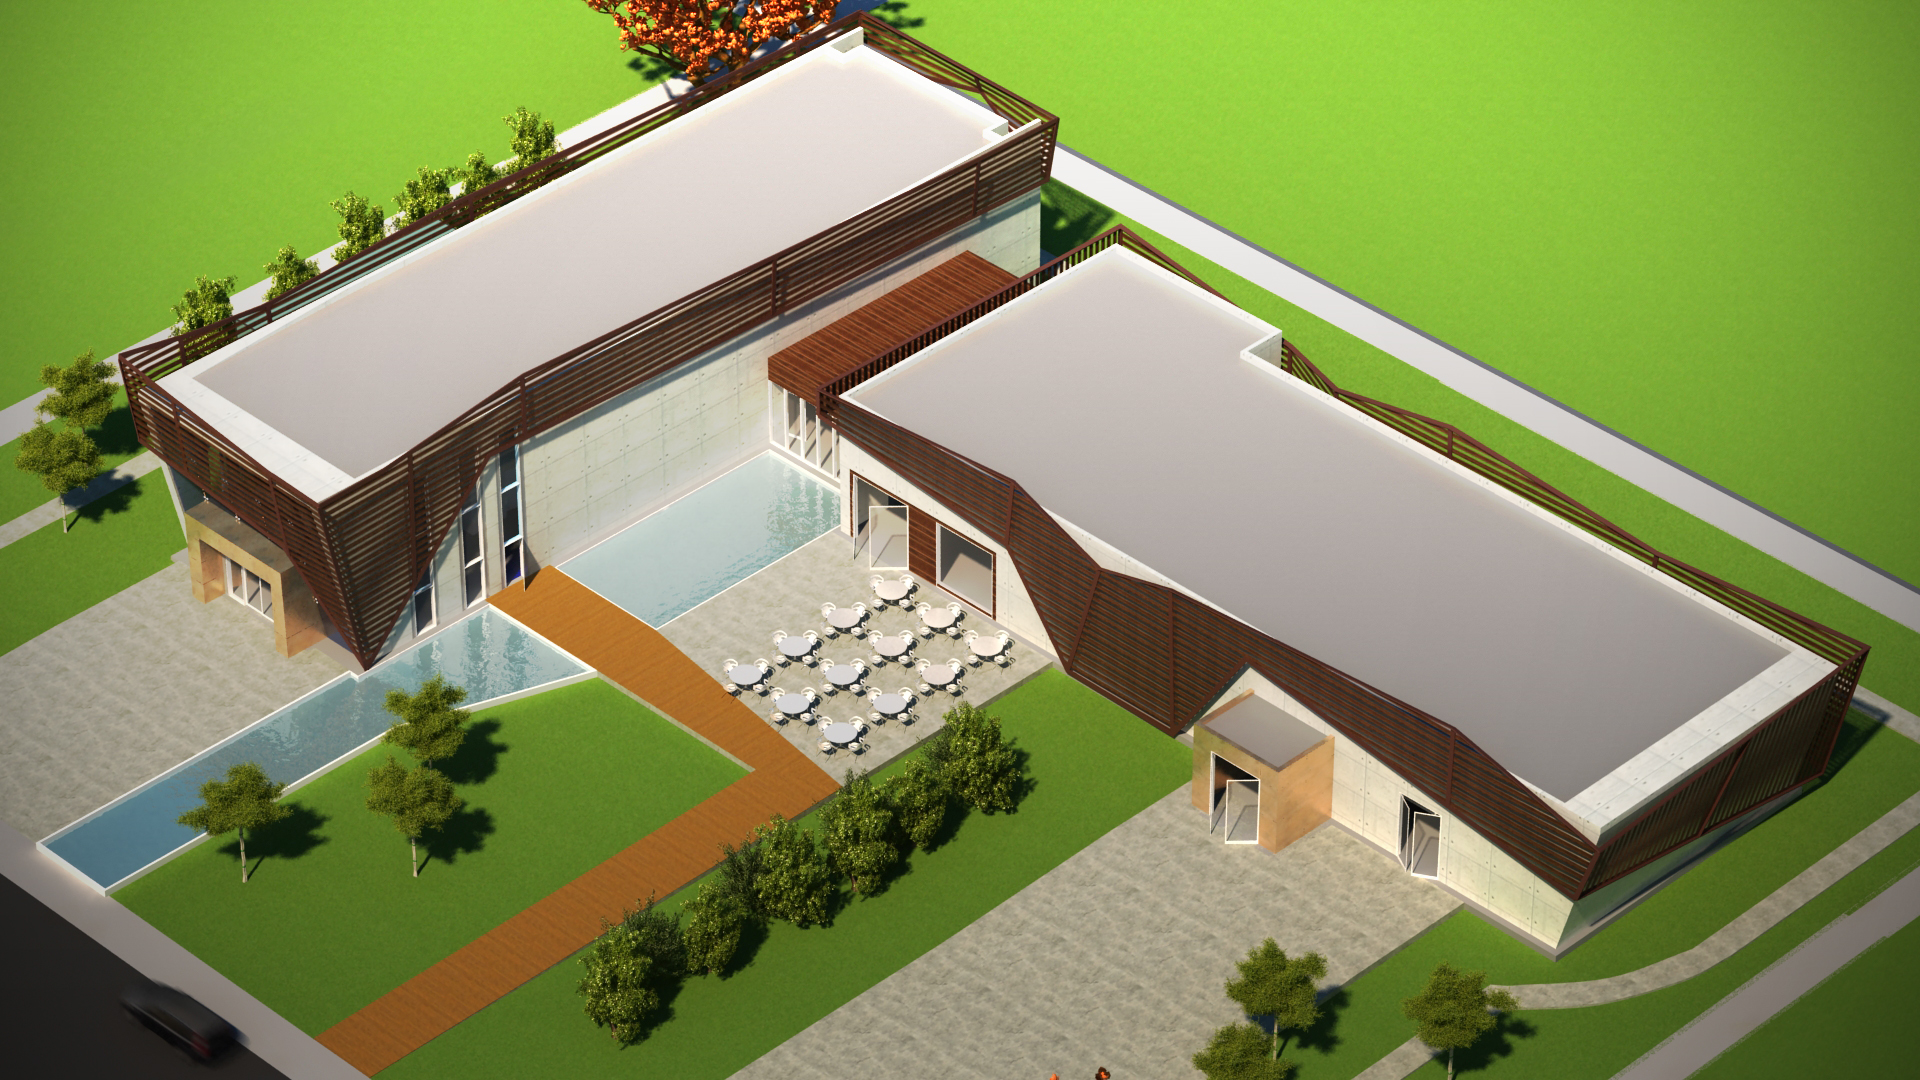 Border-Free Model Home and Museum 2 by omerty